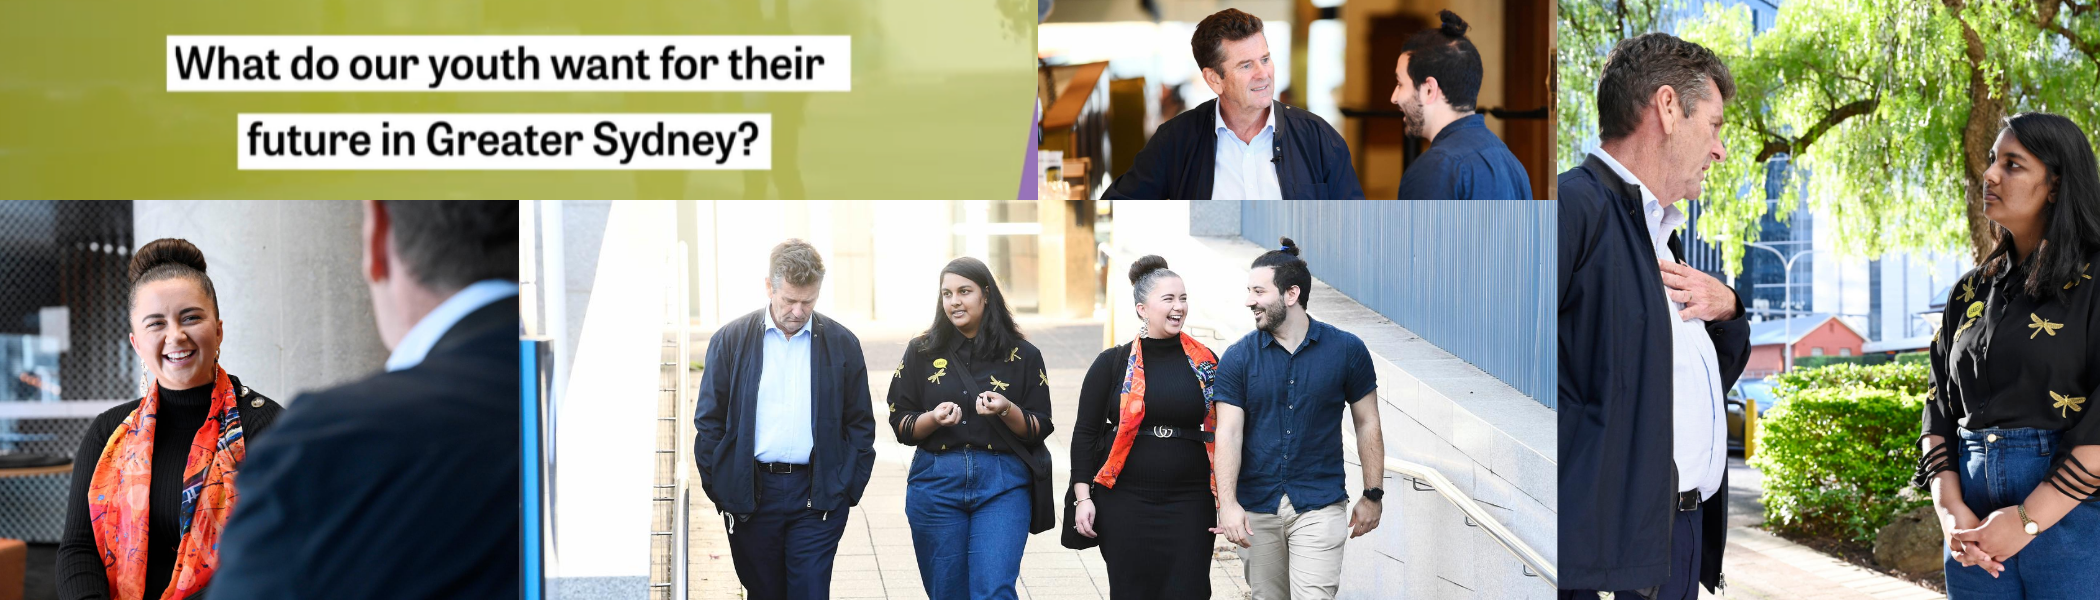 What do our youth want for their future in Greater Sydney?